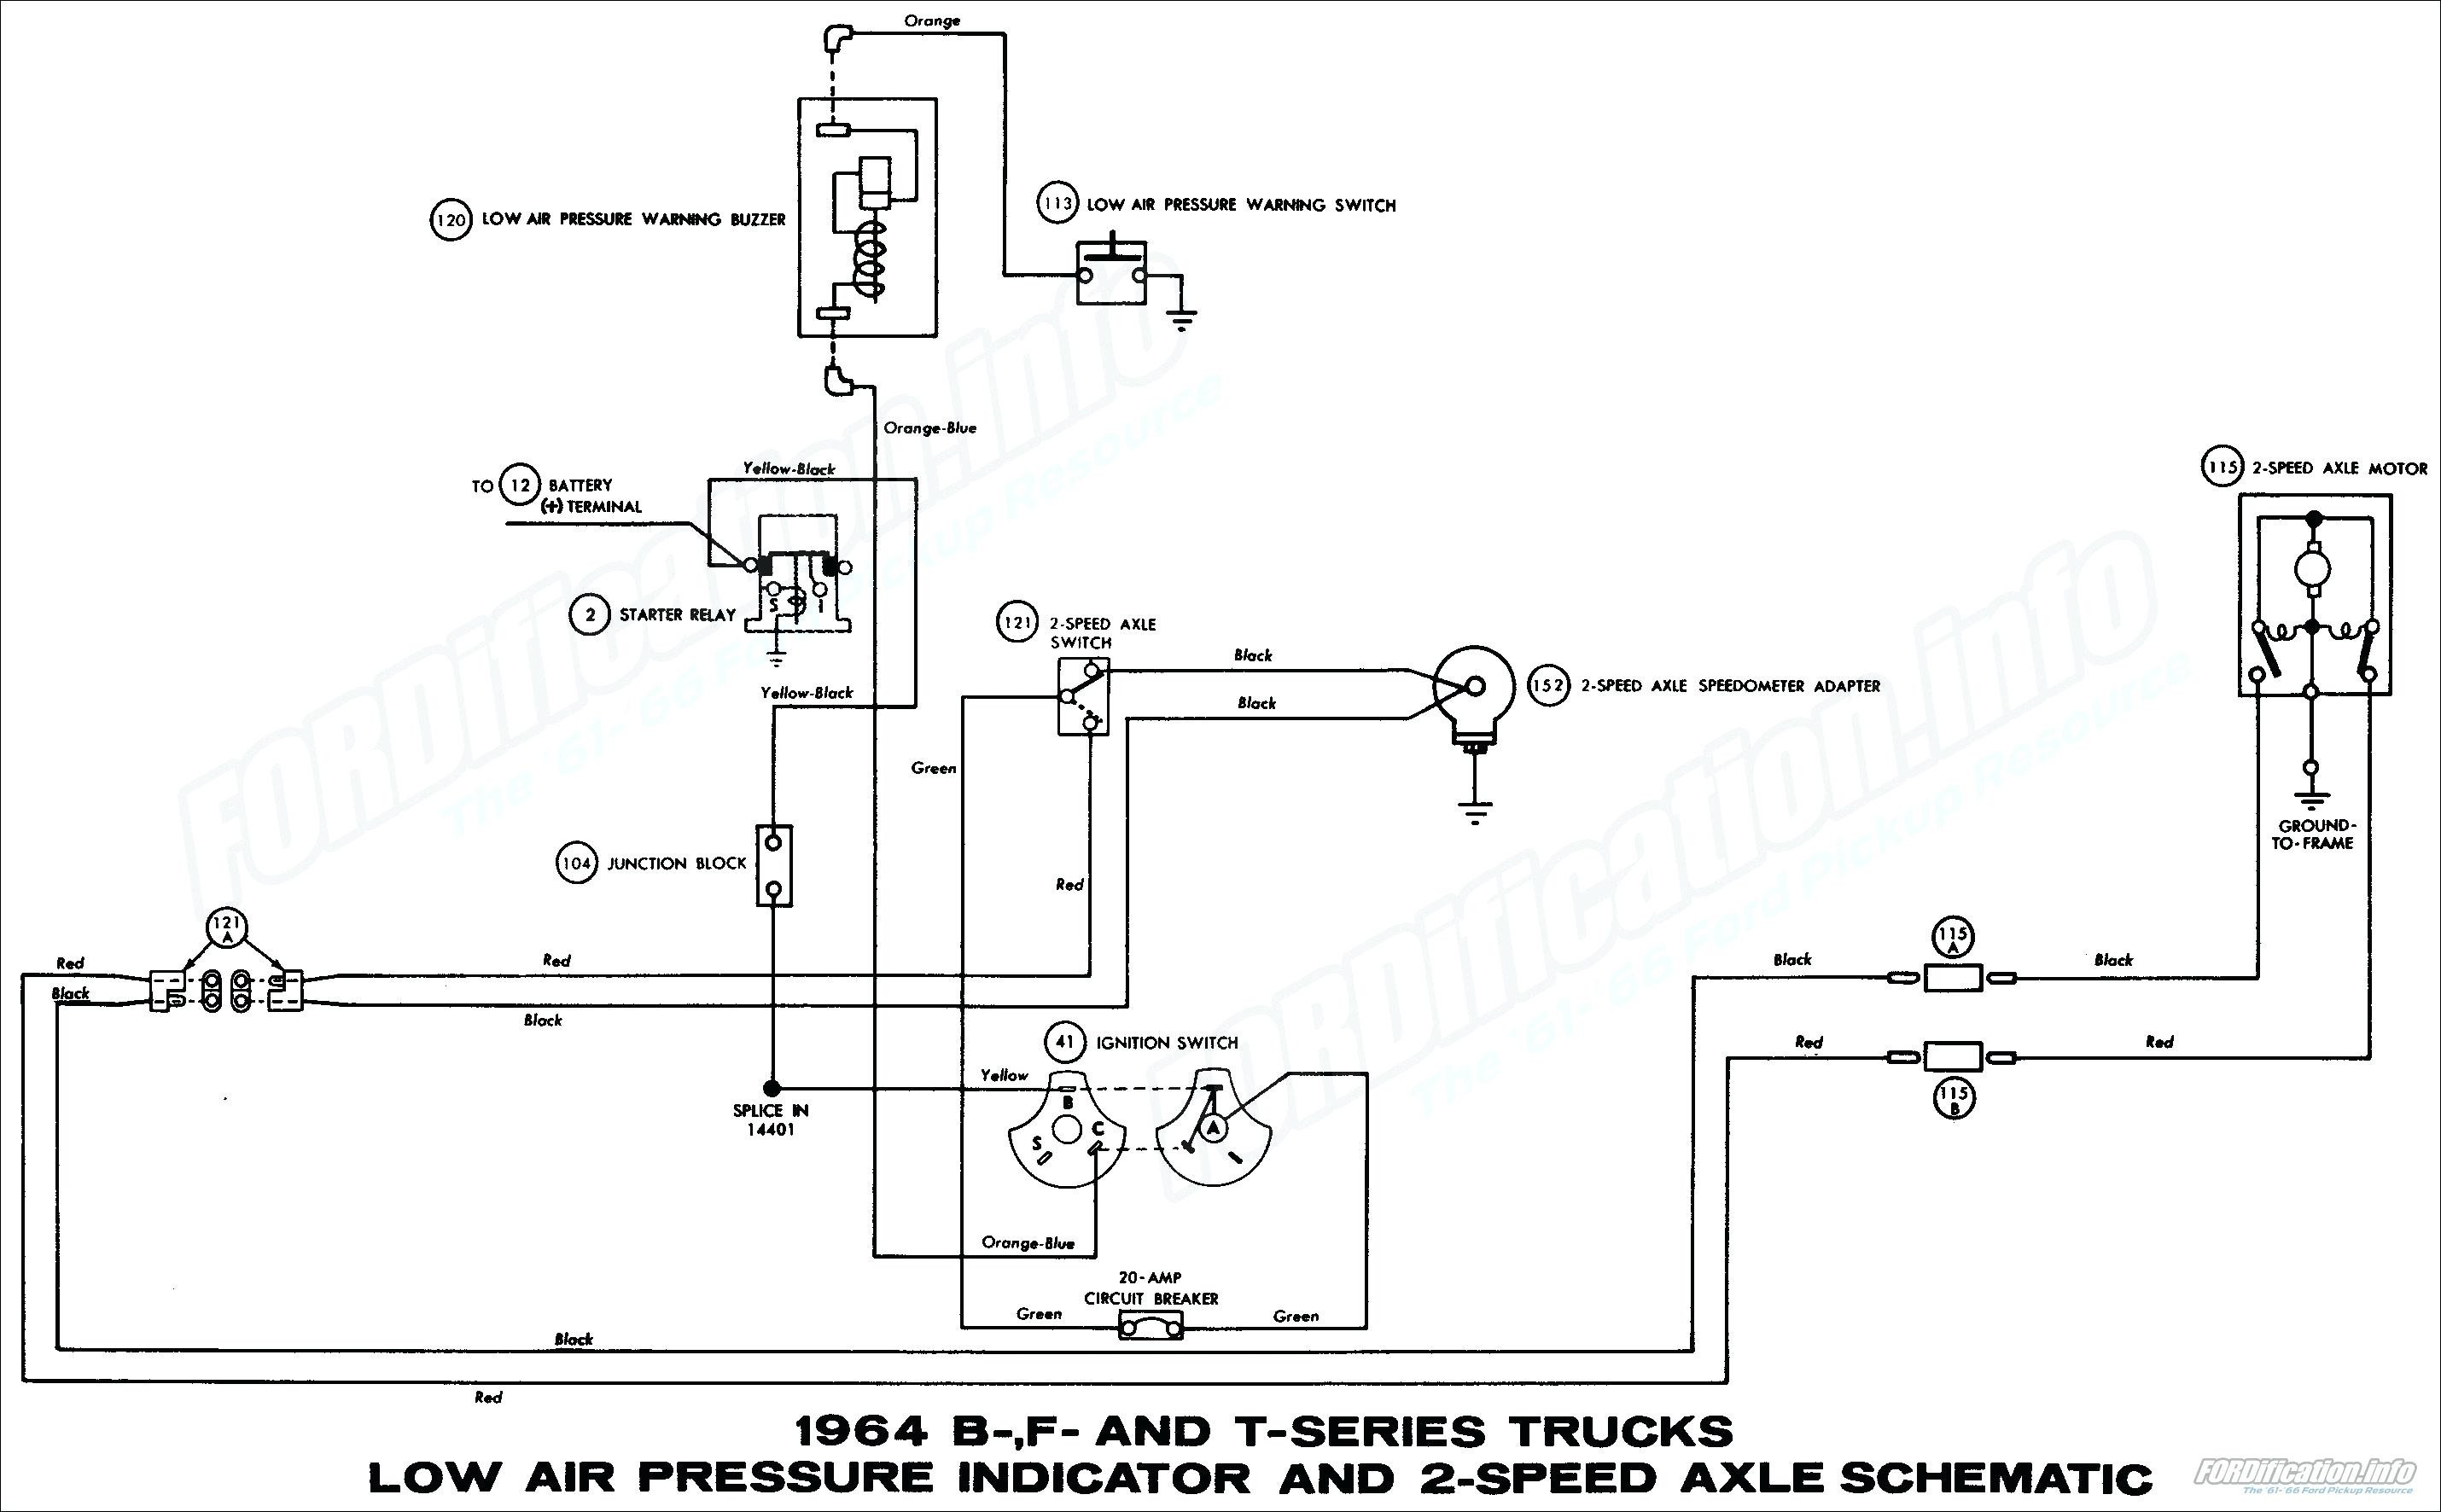 Air Pressor Relay Wiring Diagram